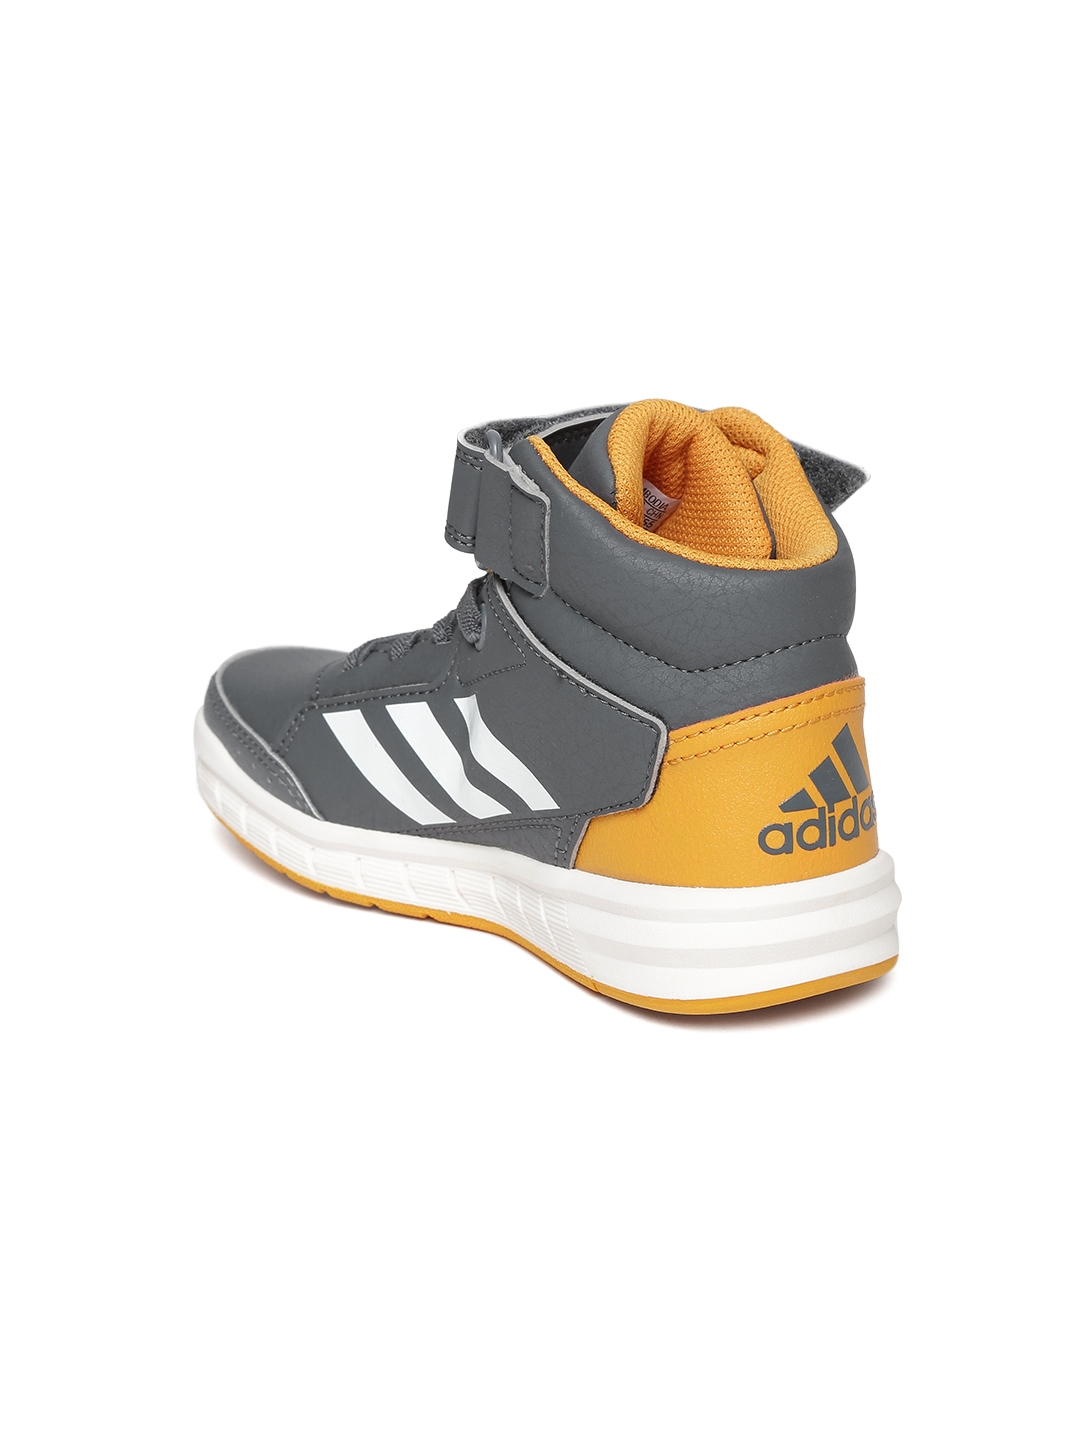 252ce60a9301 Buy ADIDAS Kids Grey AltaSport Eco Ortholite Mid Top Training Shoes ...